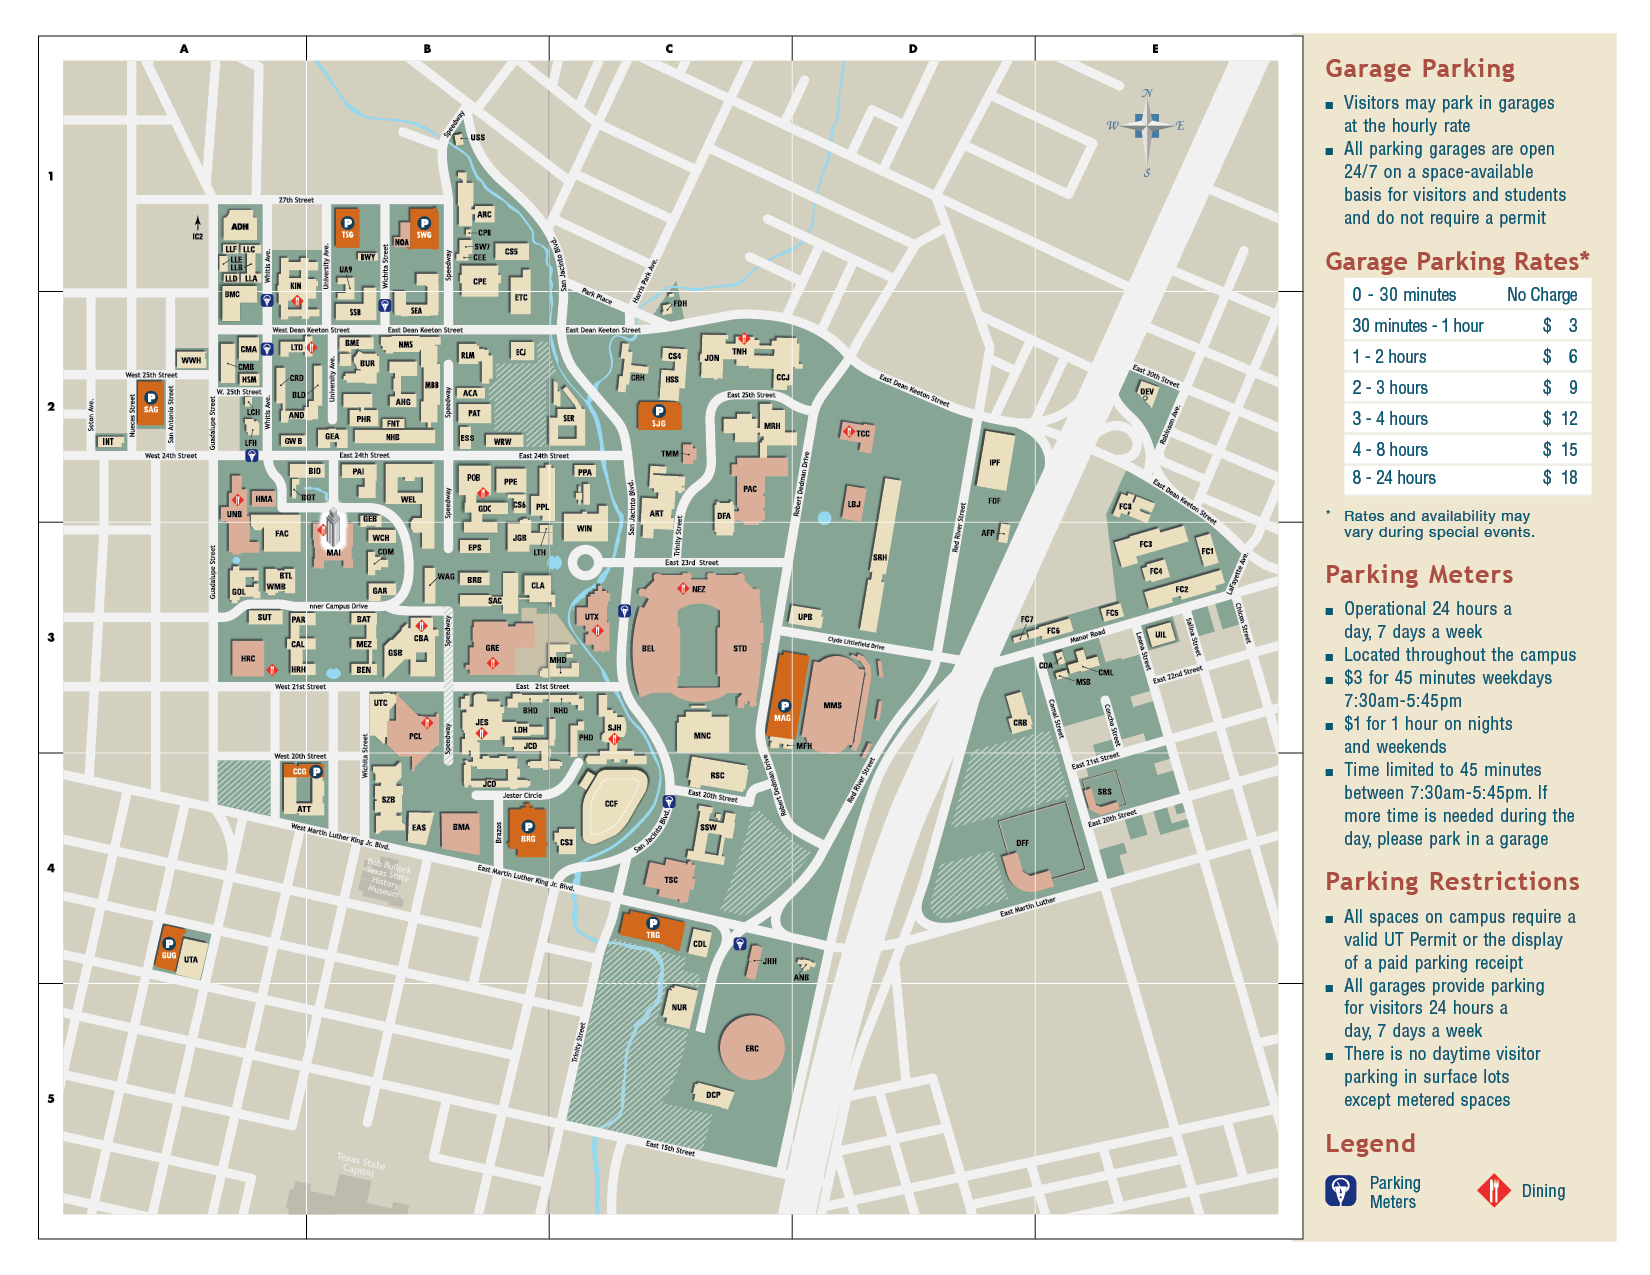 Map Of University Of Texas Austin University Of Texas Austin Campus Map | Business Ideas 2013